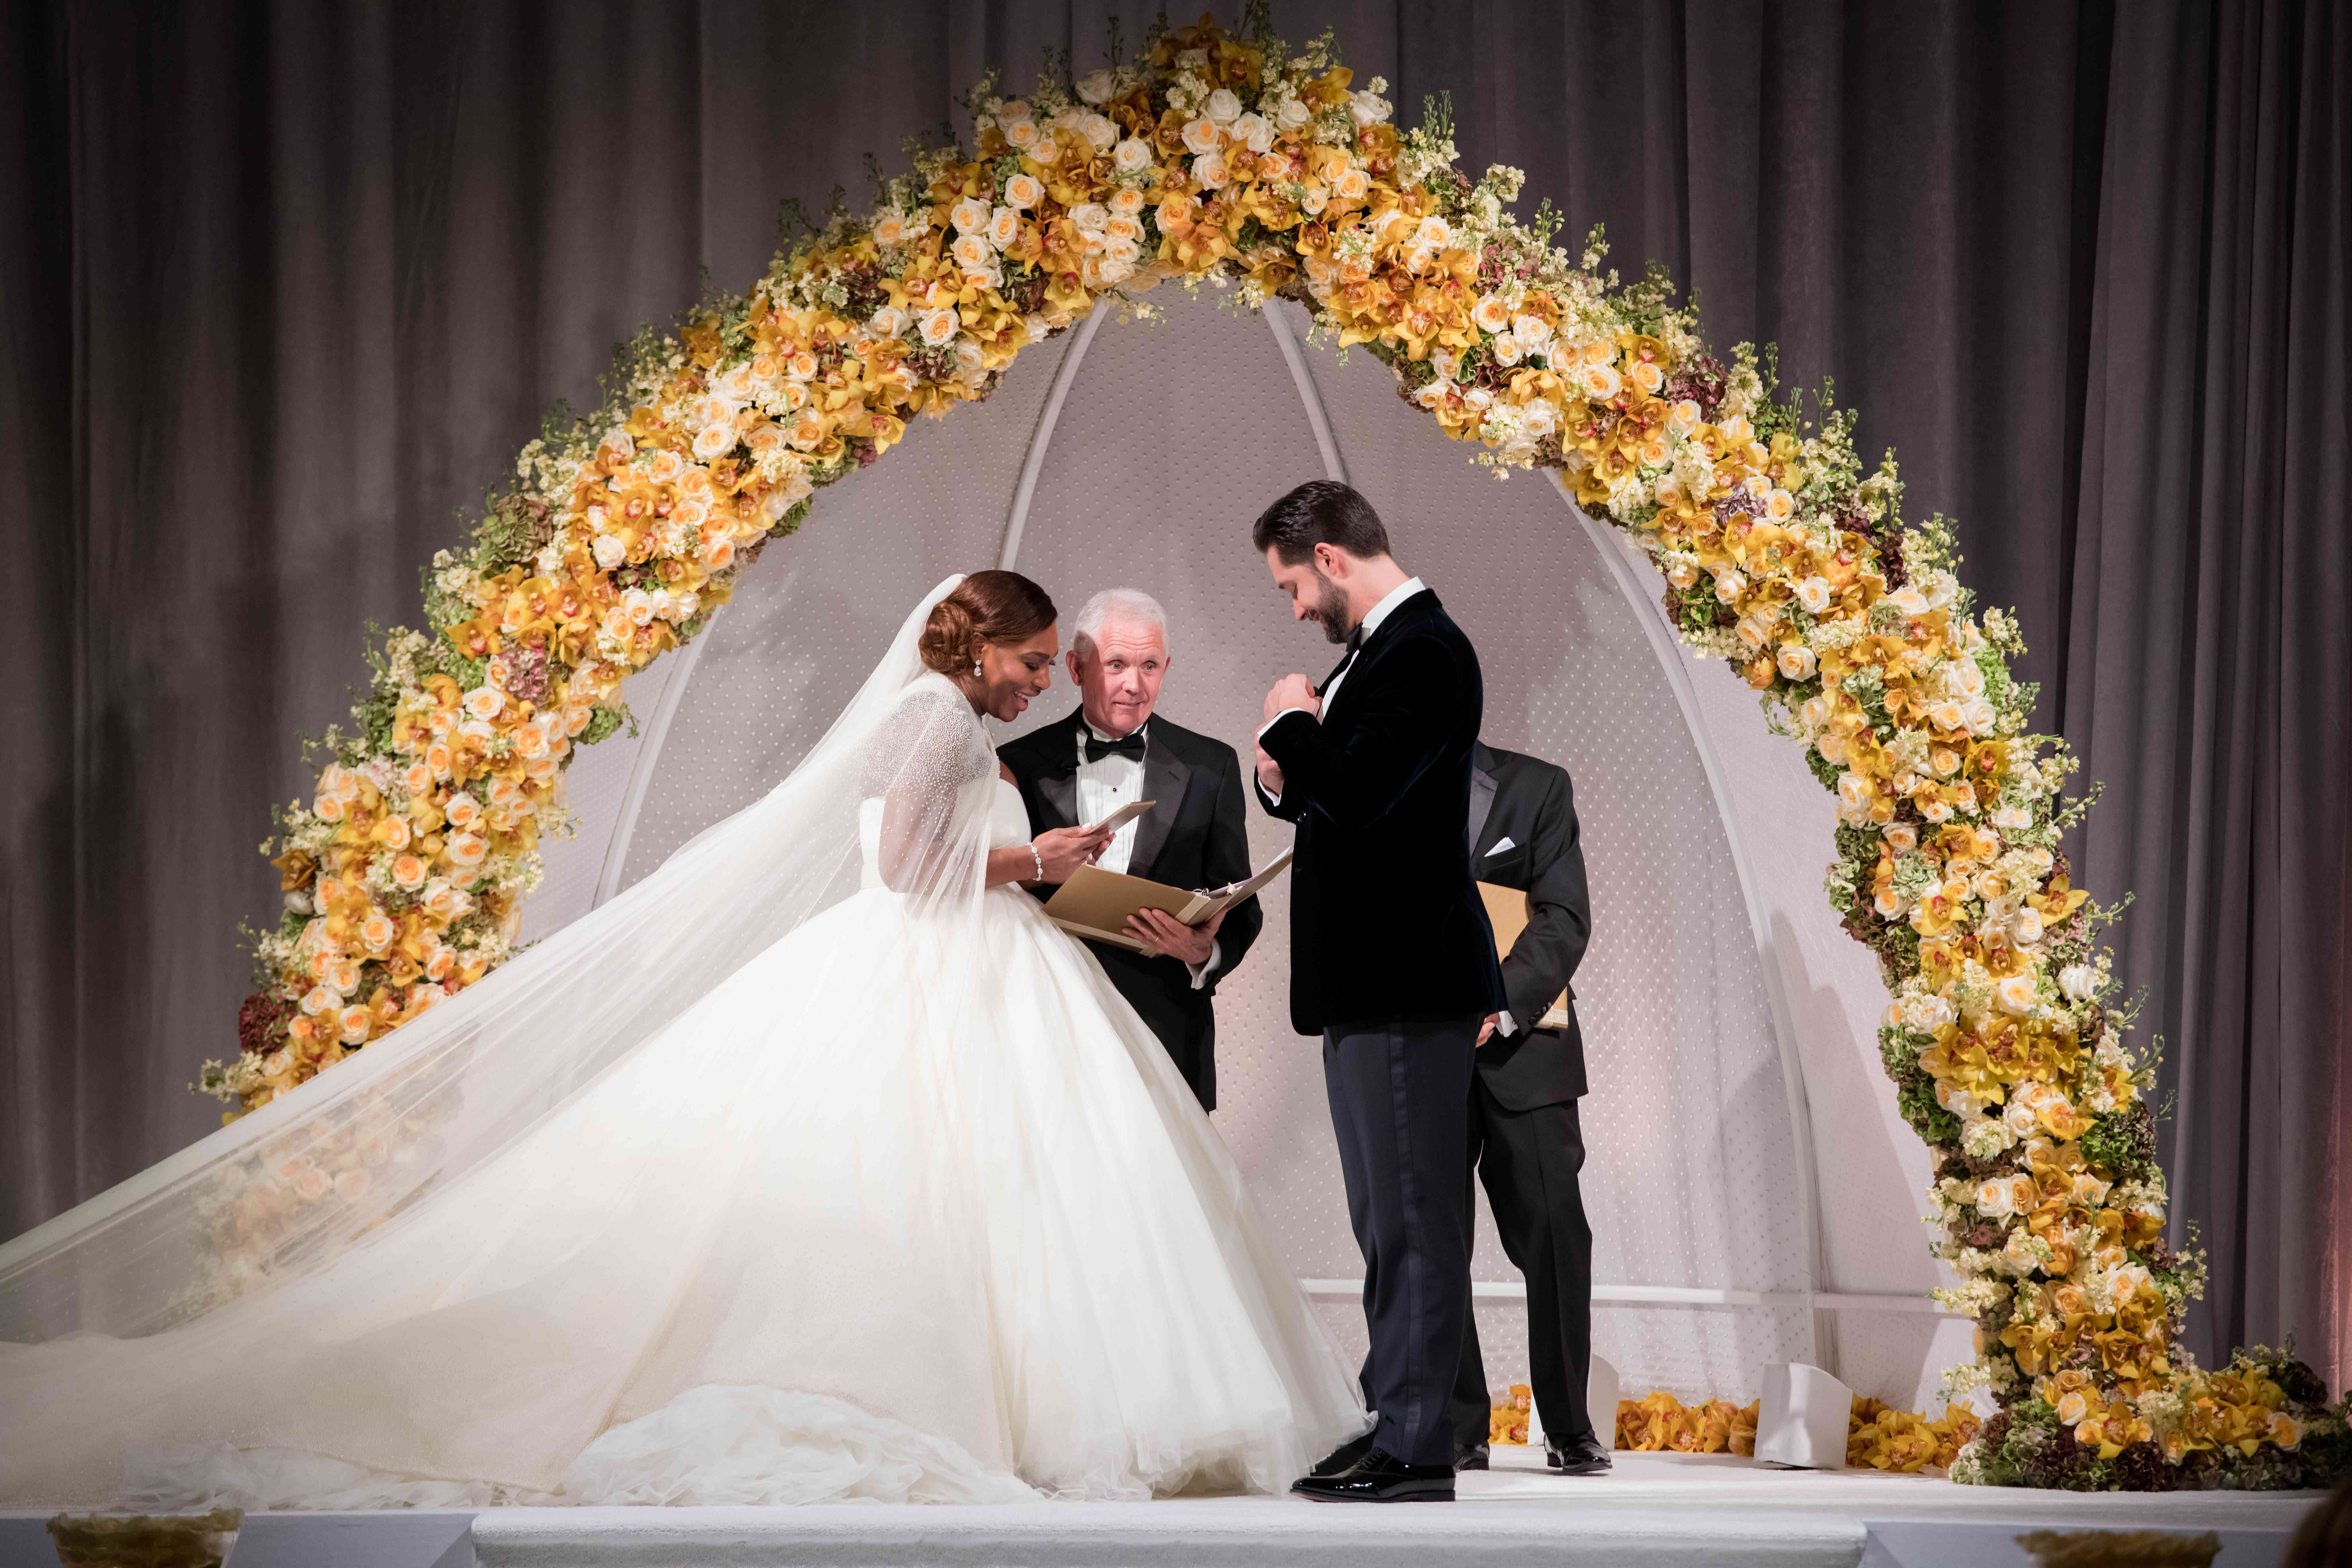 Bride (Serena Williams) and groom (Alexis Ohanian) at the wedding ceremony